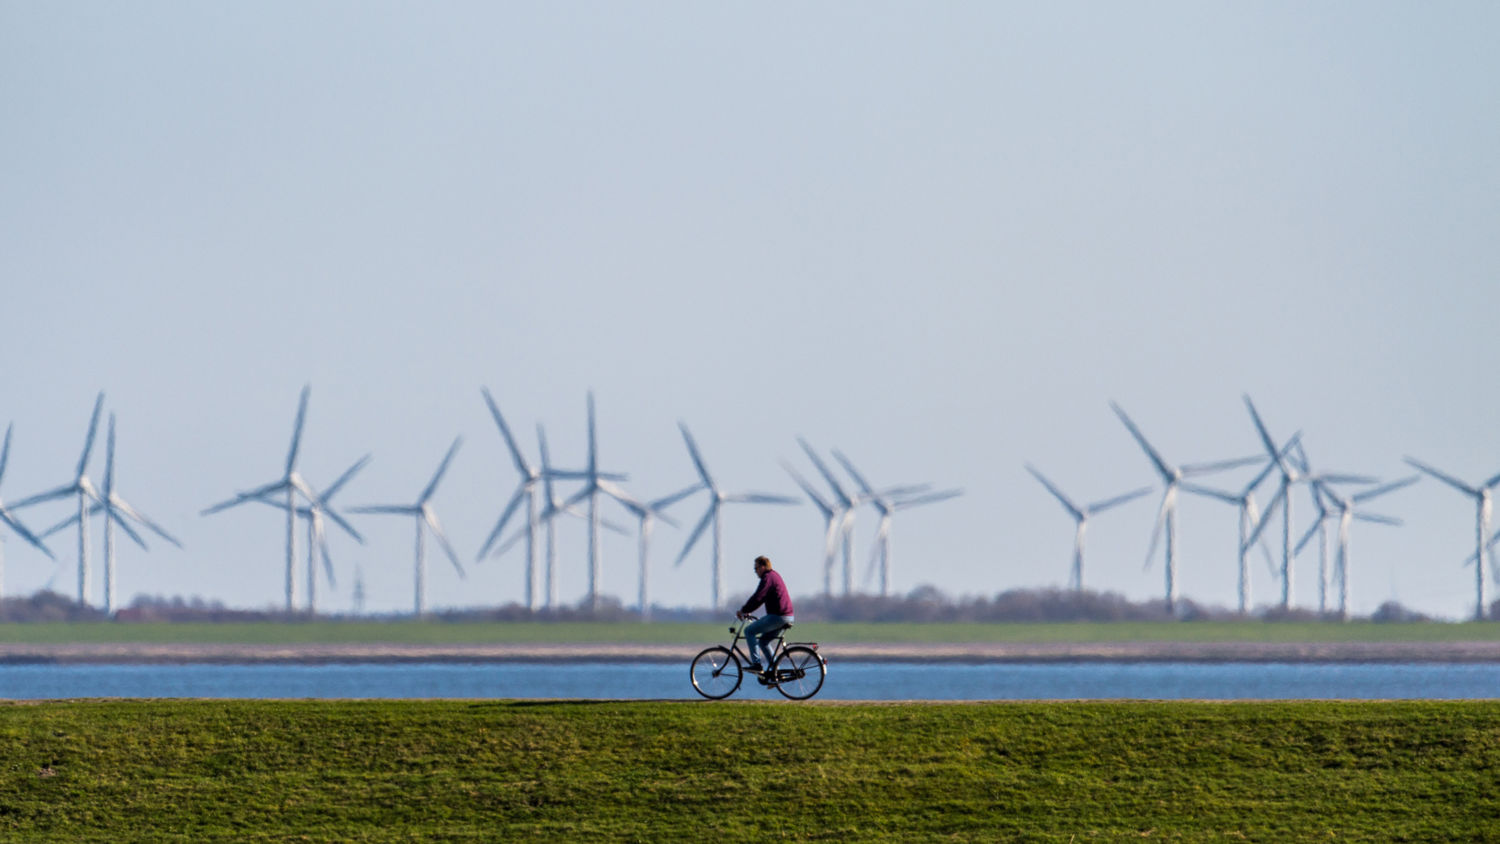 A bicyclist on an embankment in front of wind turbines in Norderney, Germany.